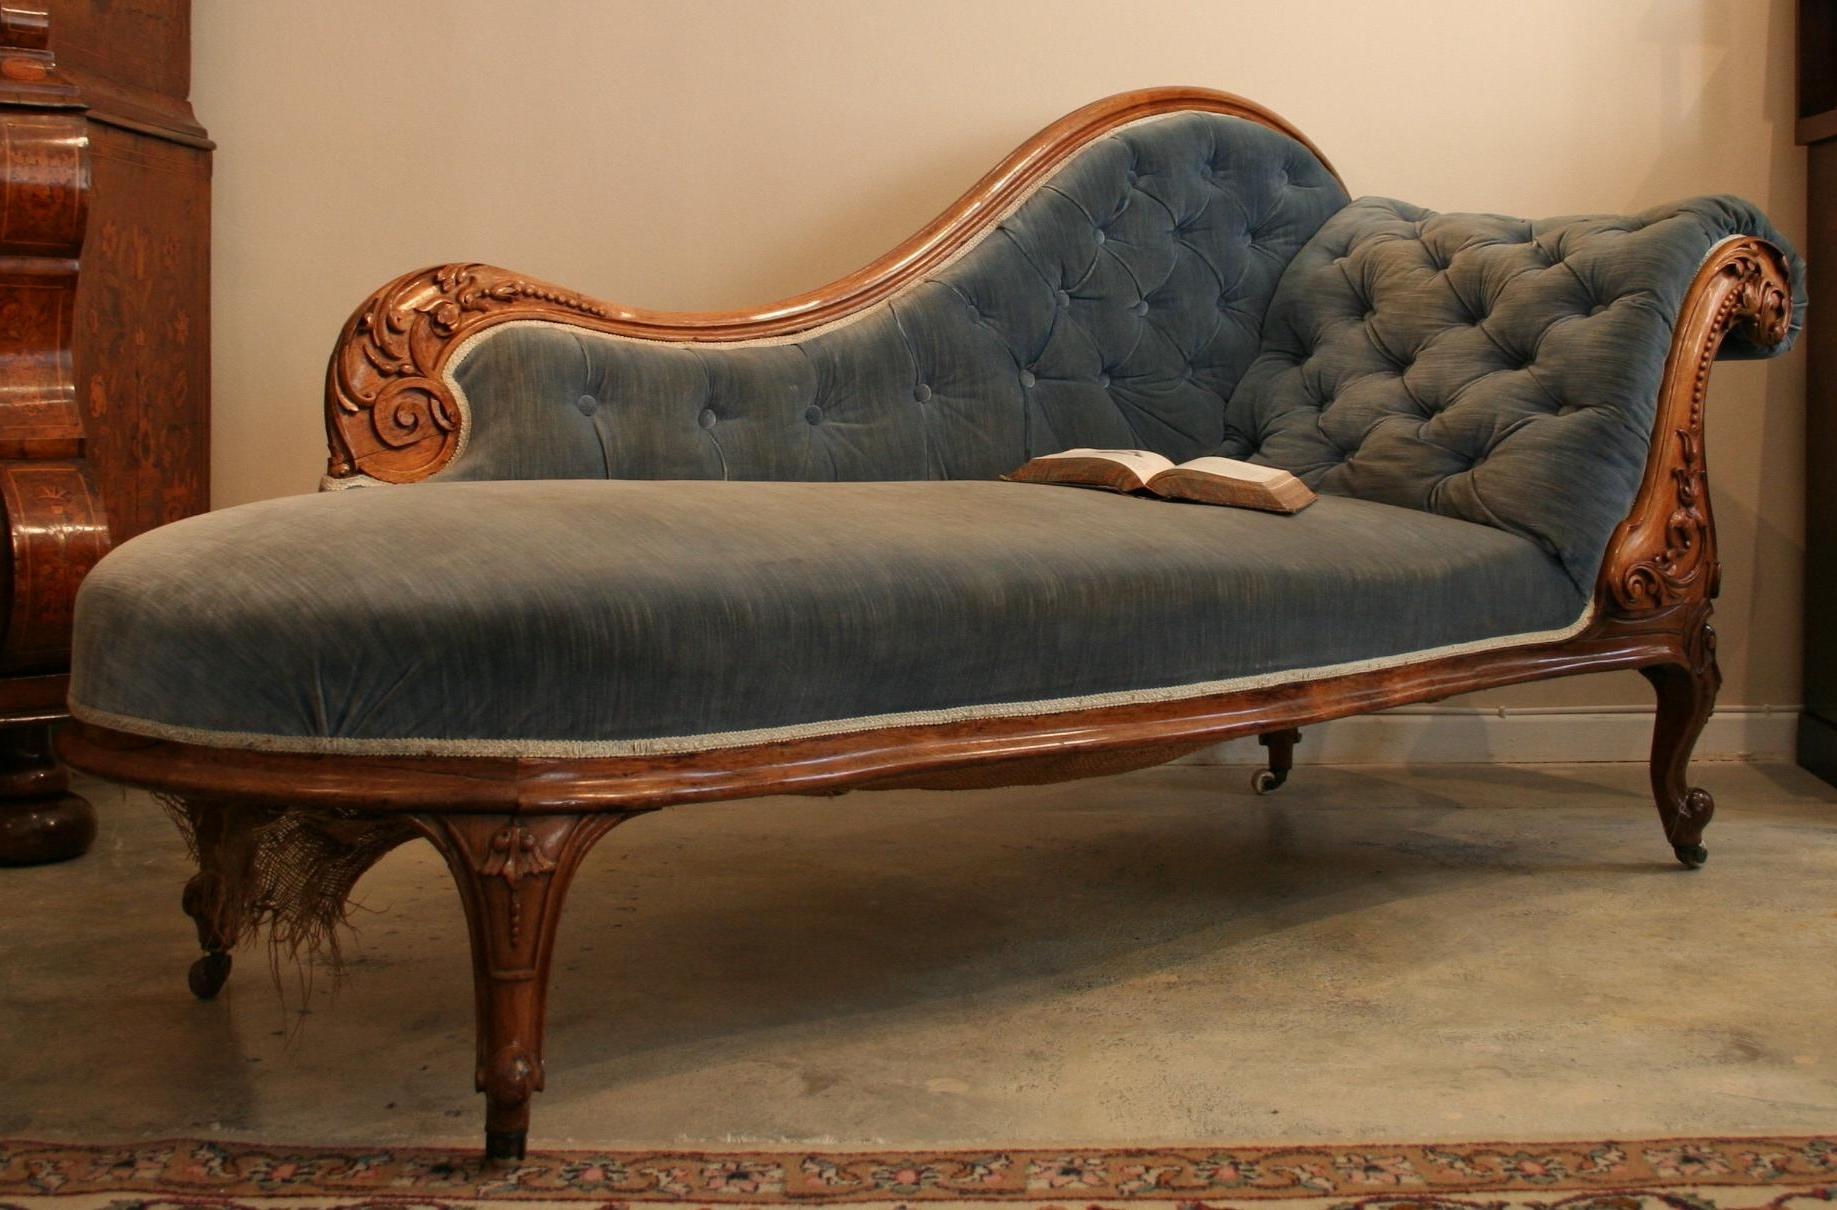 Cheap Chaise Lounges Pertaining To Most Recent Furniture: Cheap Chaise Lounge Chairs Indoors And Indoor Chaise (View 5 of 15)